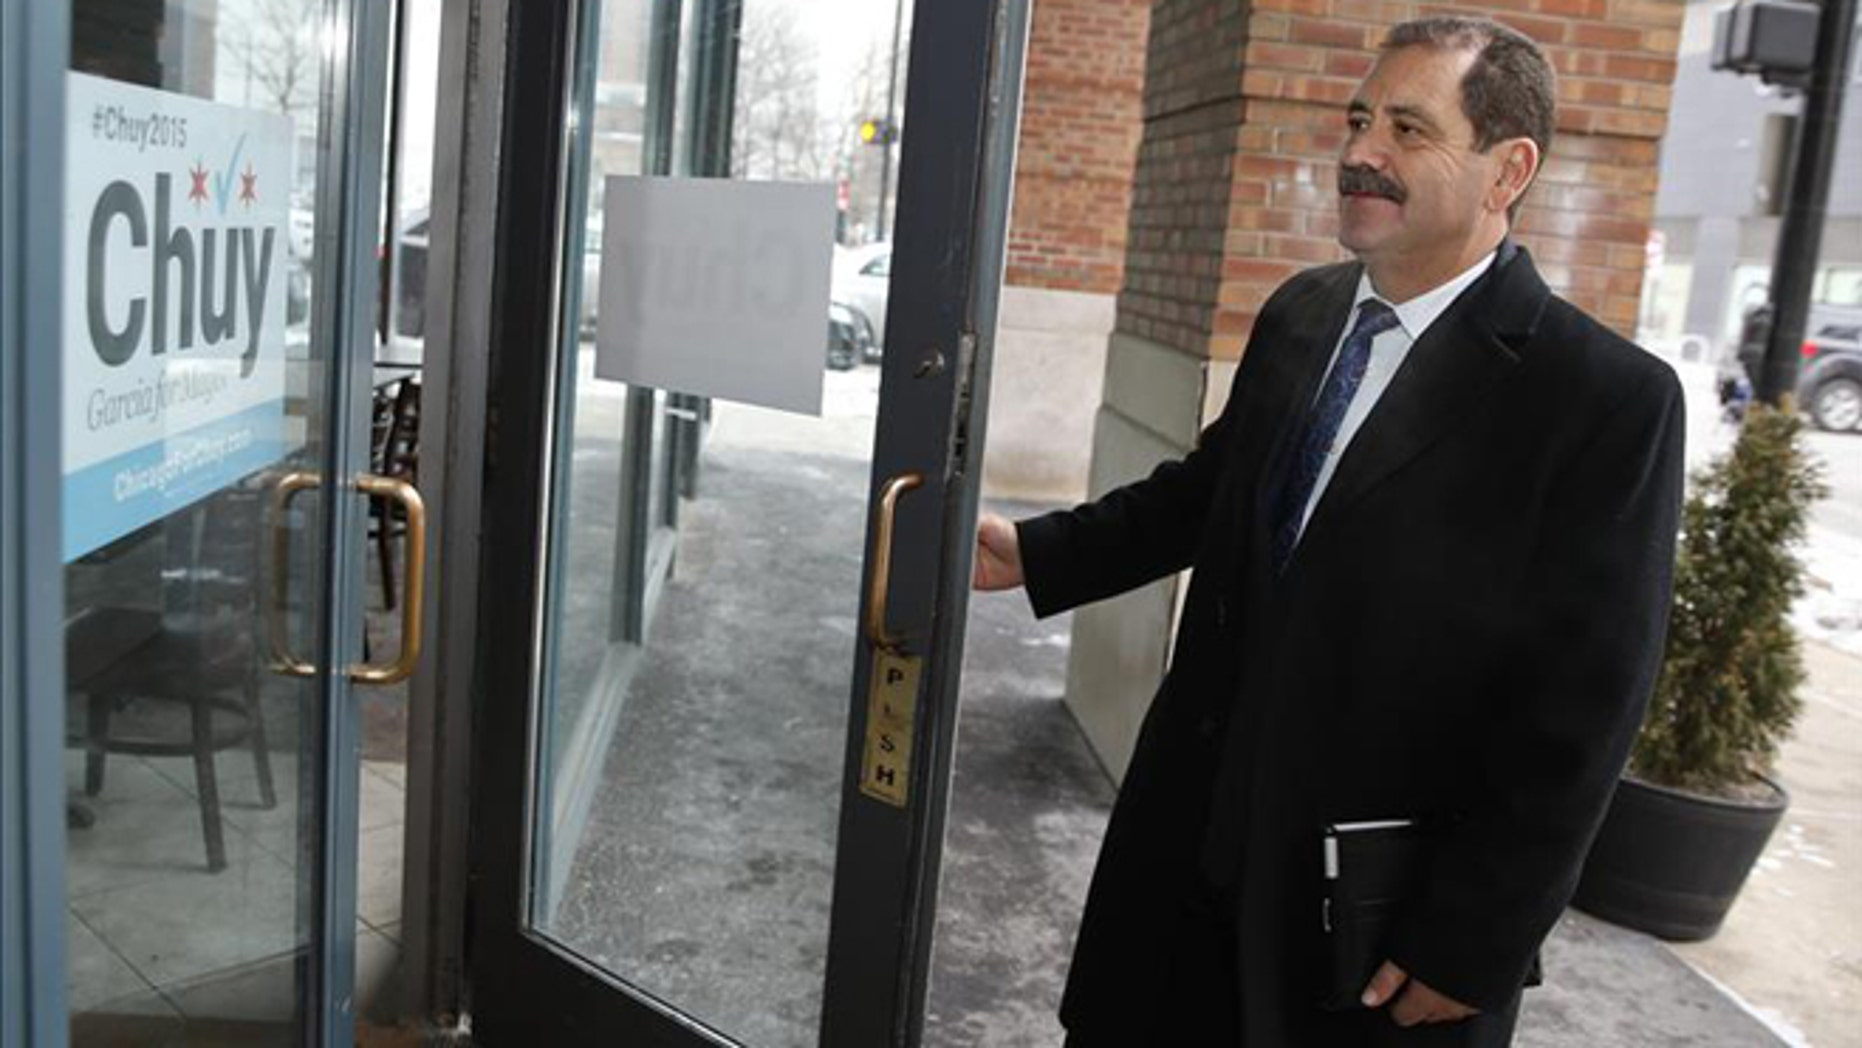 "Jesus ""Chuy"" Garcia, the Mexican-born candidate for mayor of Chicago, seen arriving at his campaign headquarters, says that if he wins the city's all-Democratic mayoral runoff against incumbent Rahm Emanuel, it will have national repercussions for the Democratic Party. (Photo: EFE/File)"